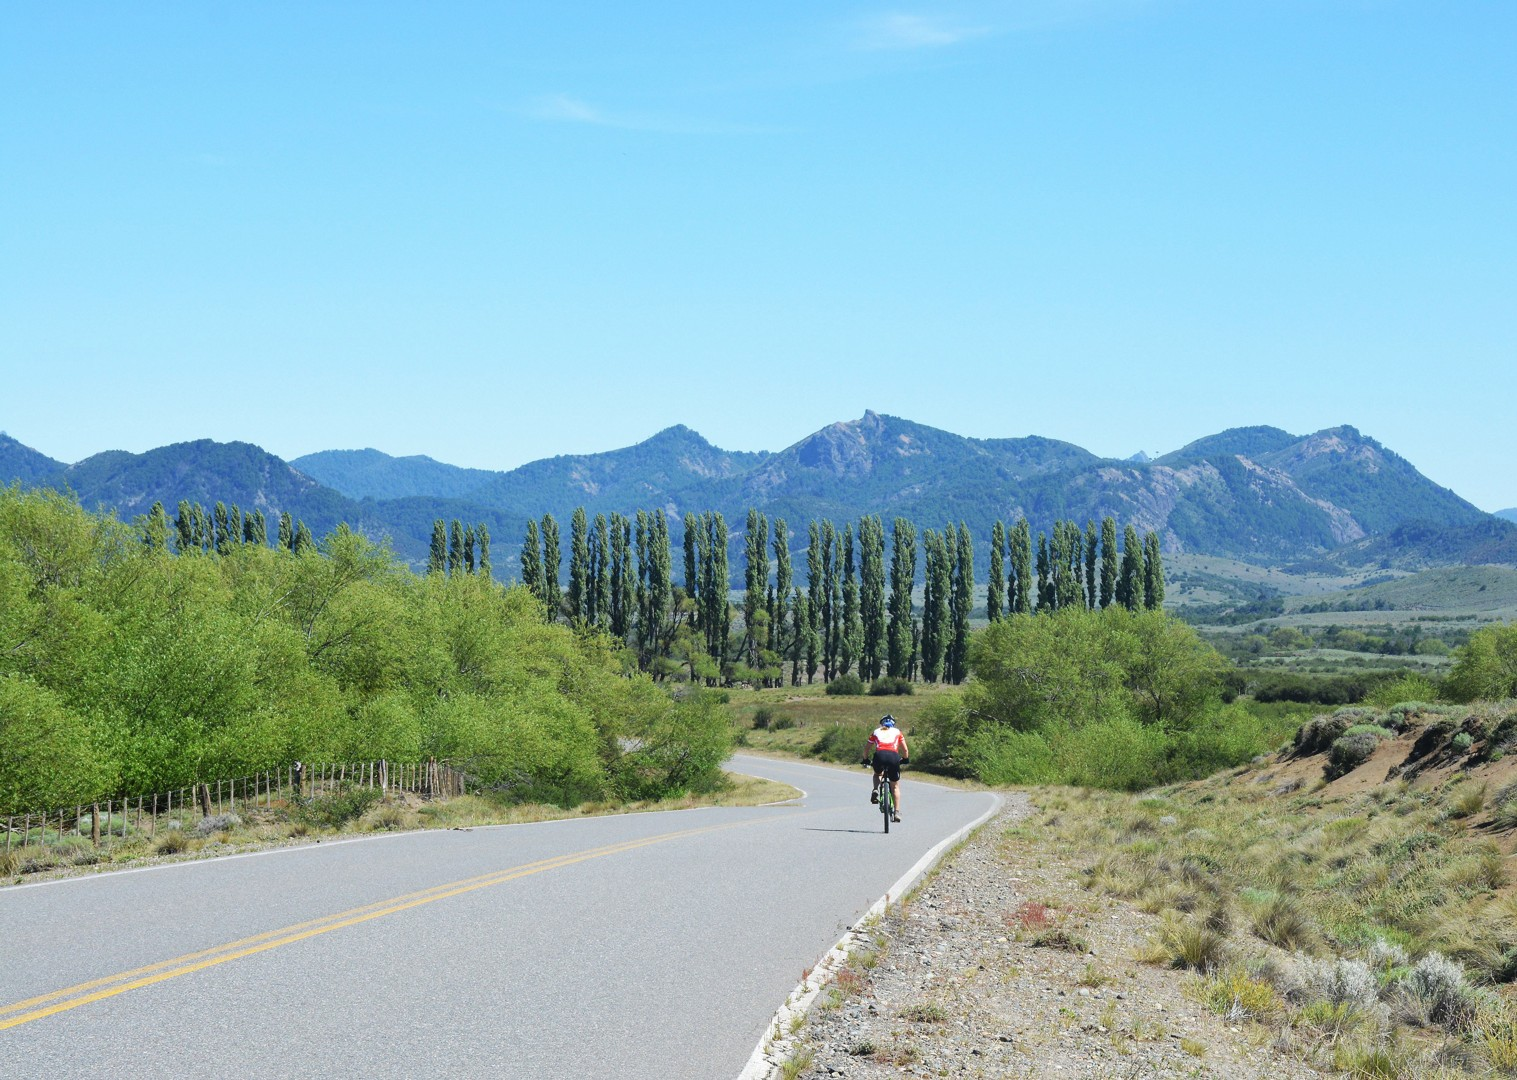 road-cycling-holiday-in-chile-and-argentina-with-skedaddle.jpg - Chile and Argentina - Lake District Road Explorer - Road Cycling